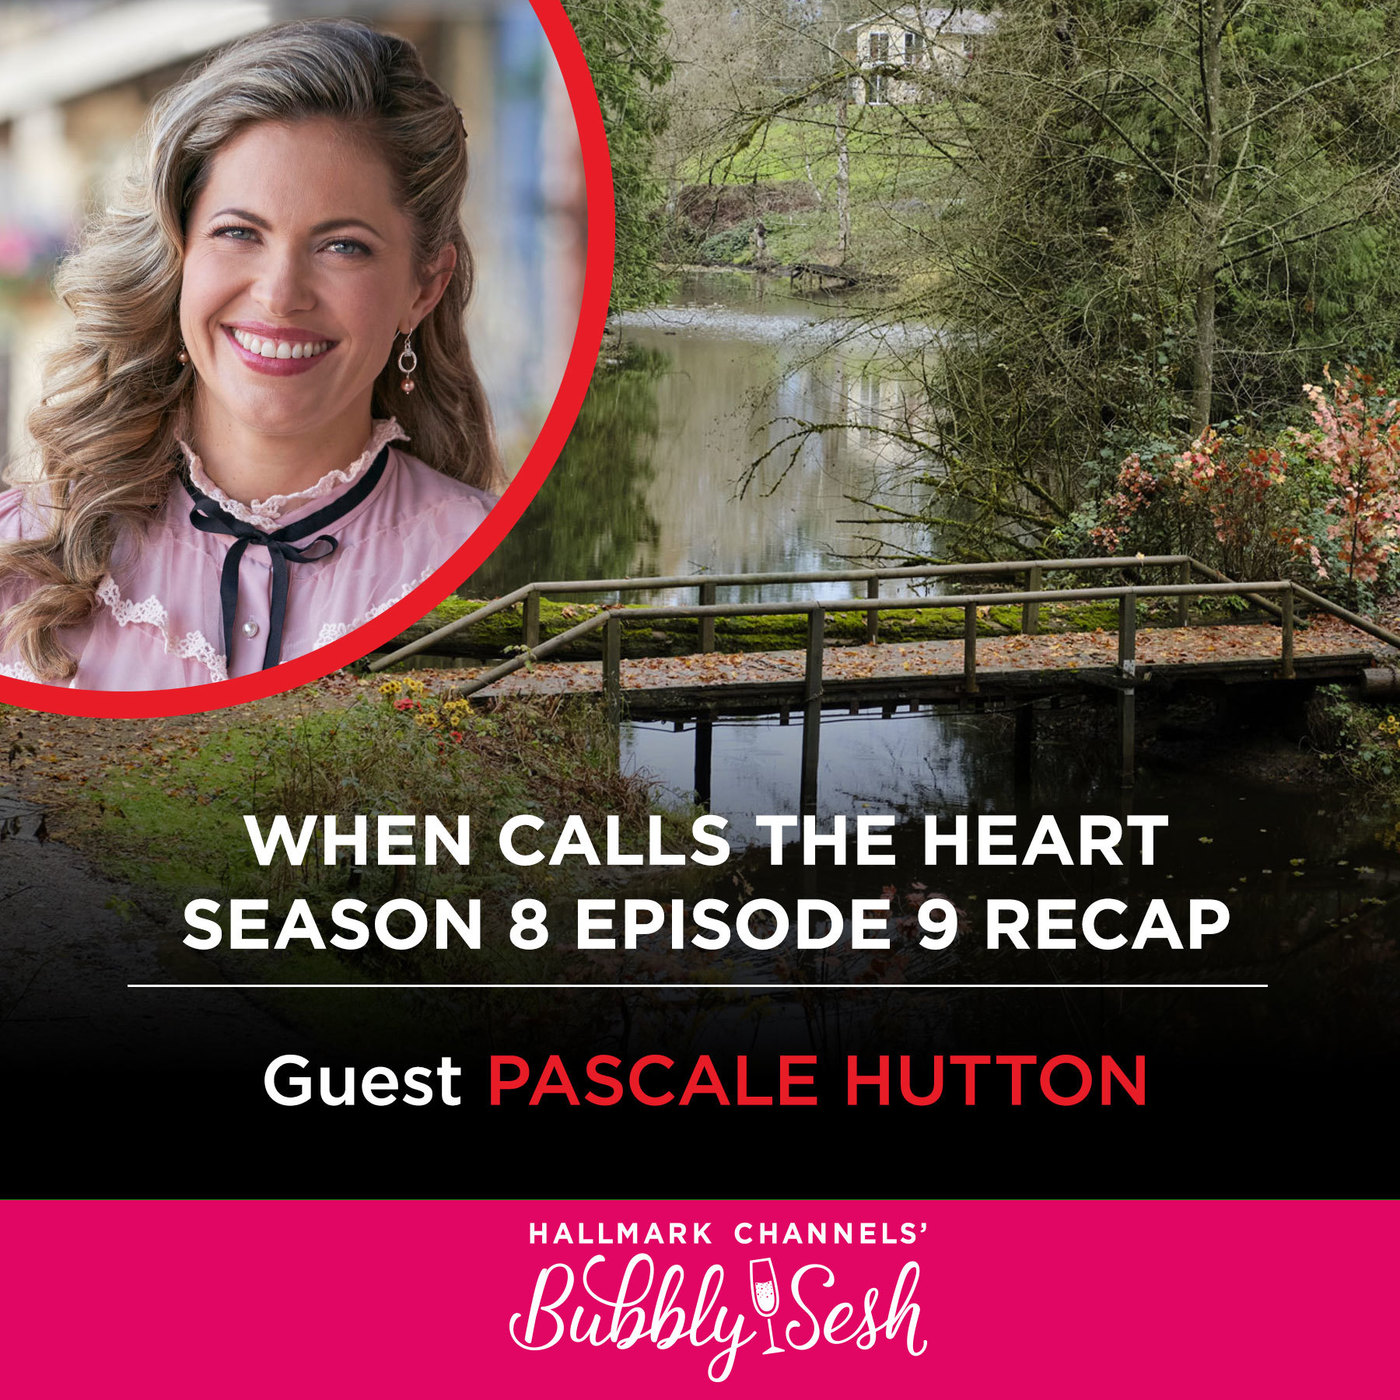 When Calls the Heart Episode 9 Recap with Guest Pascale Hutton